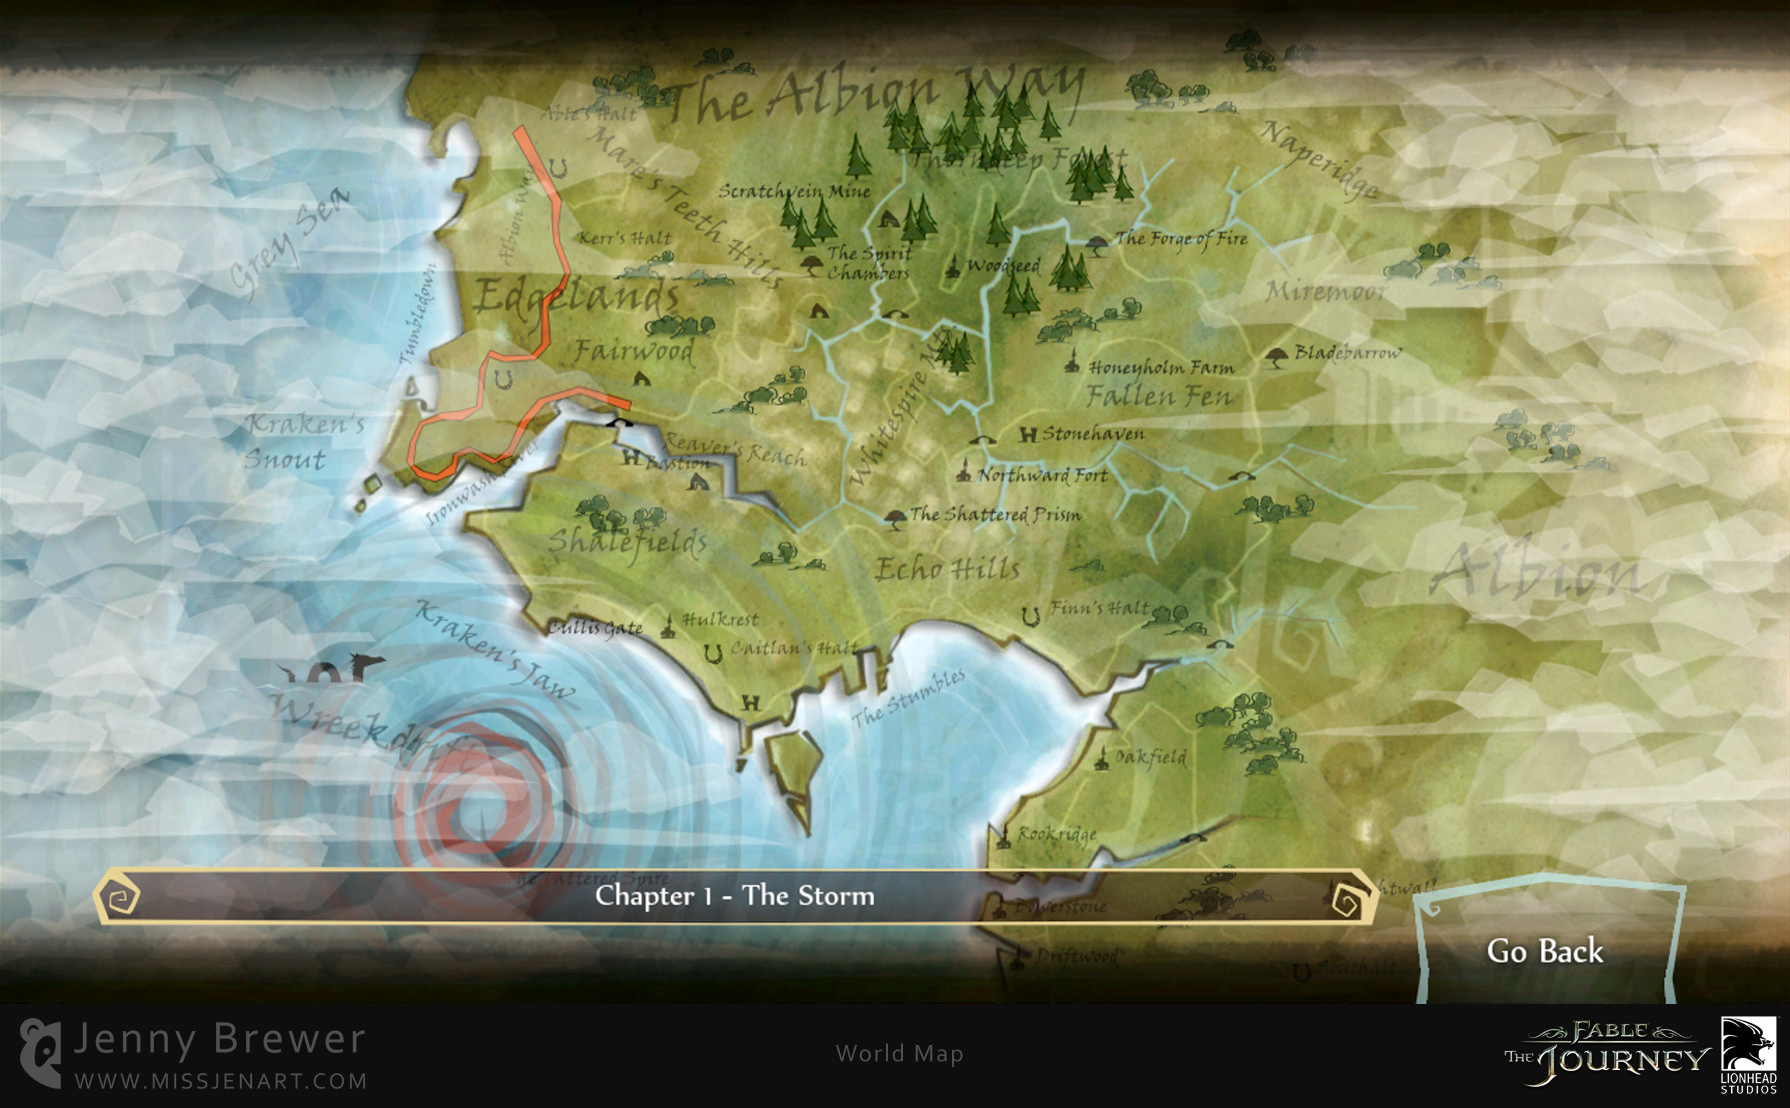 Jenny brewer 001 fablejourney map